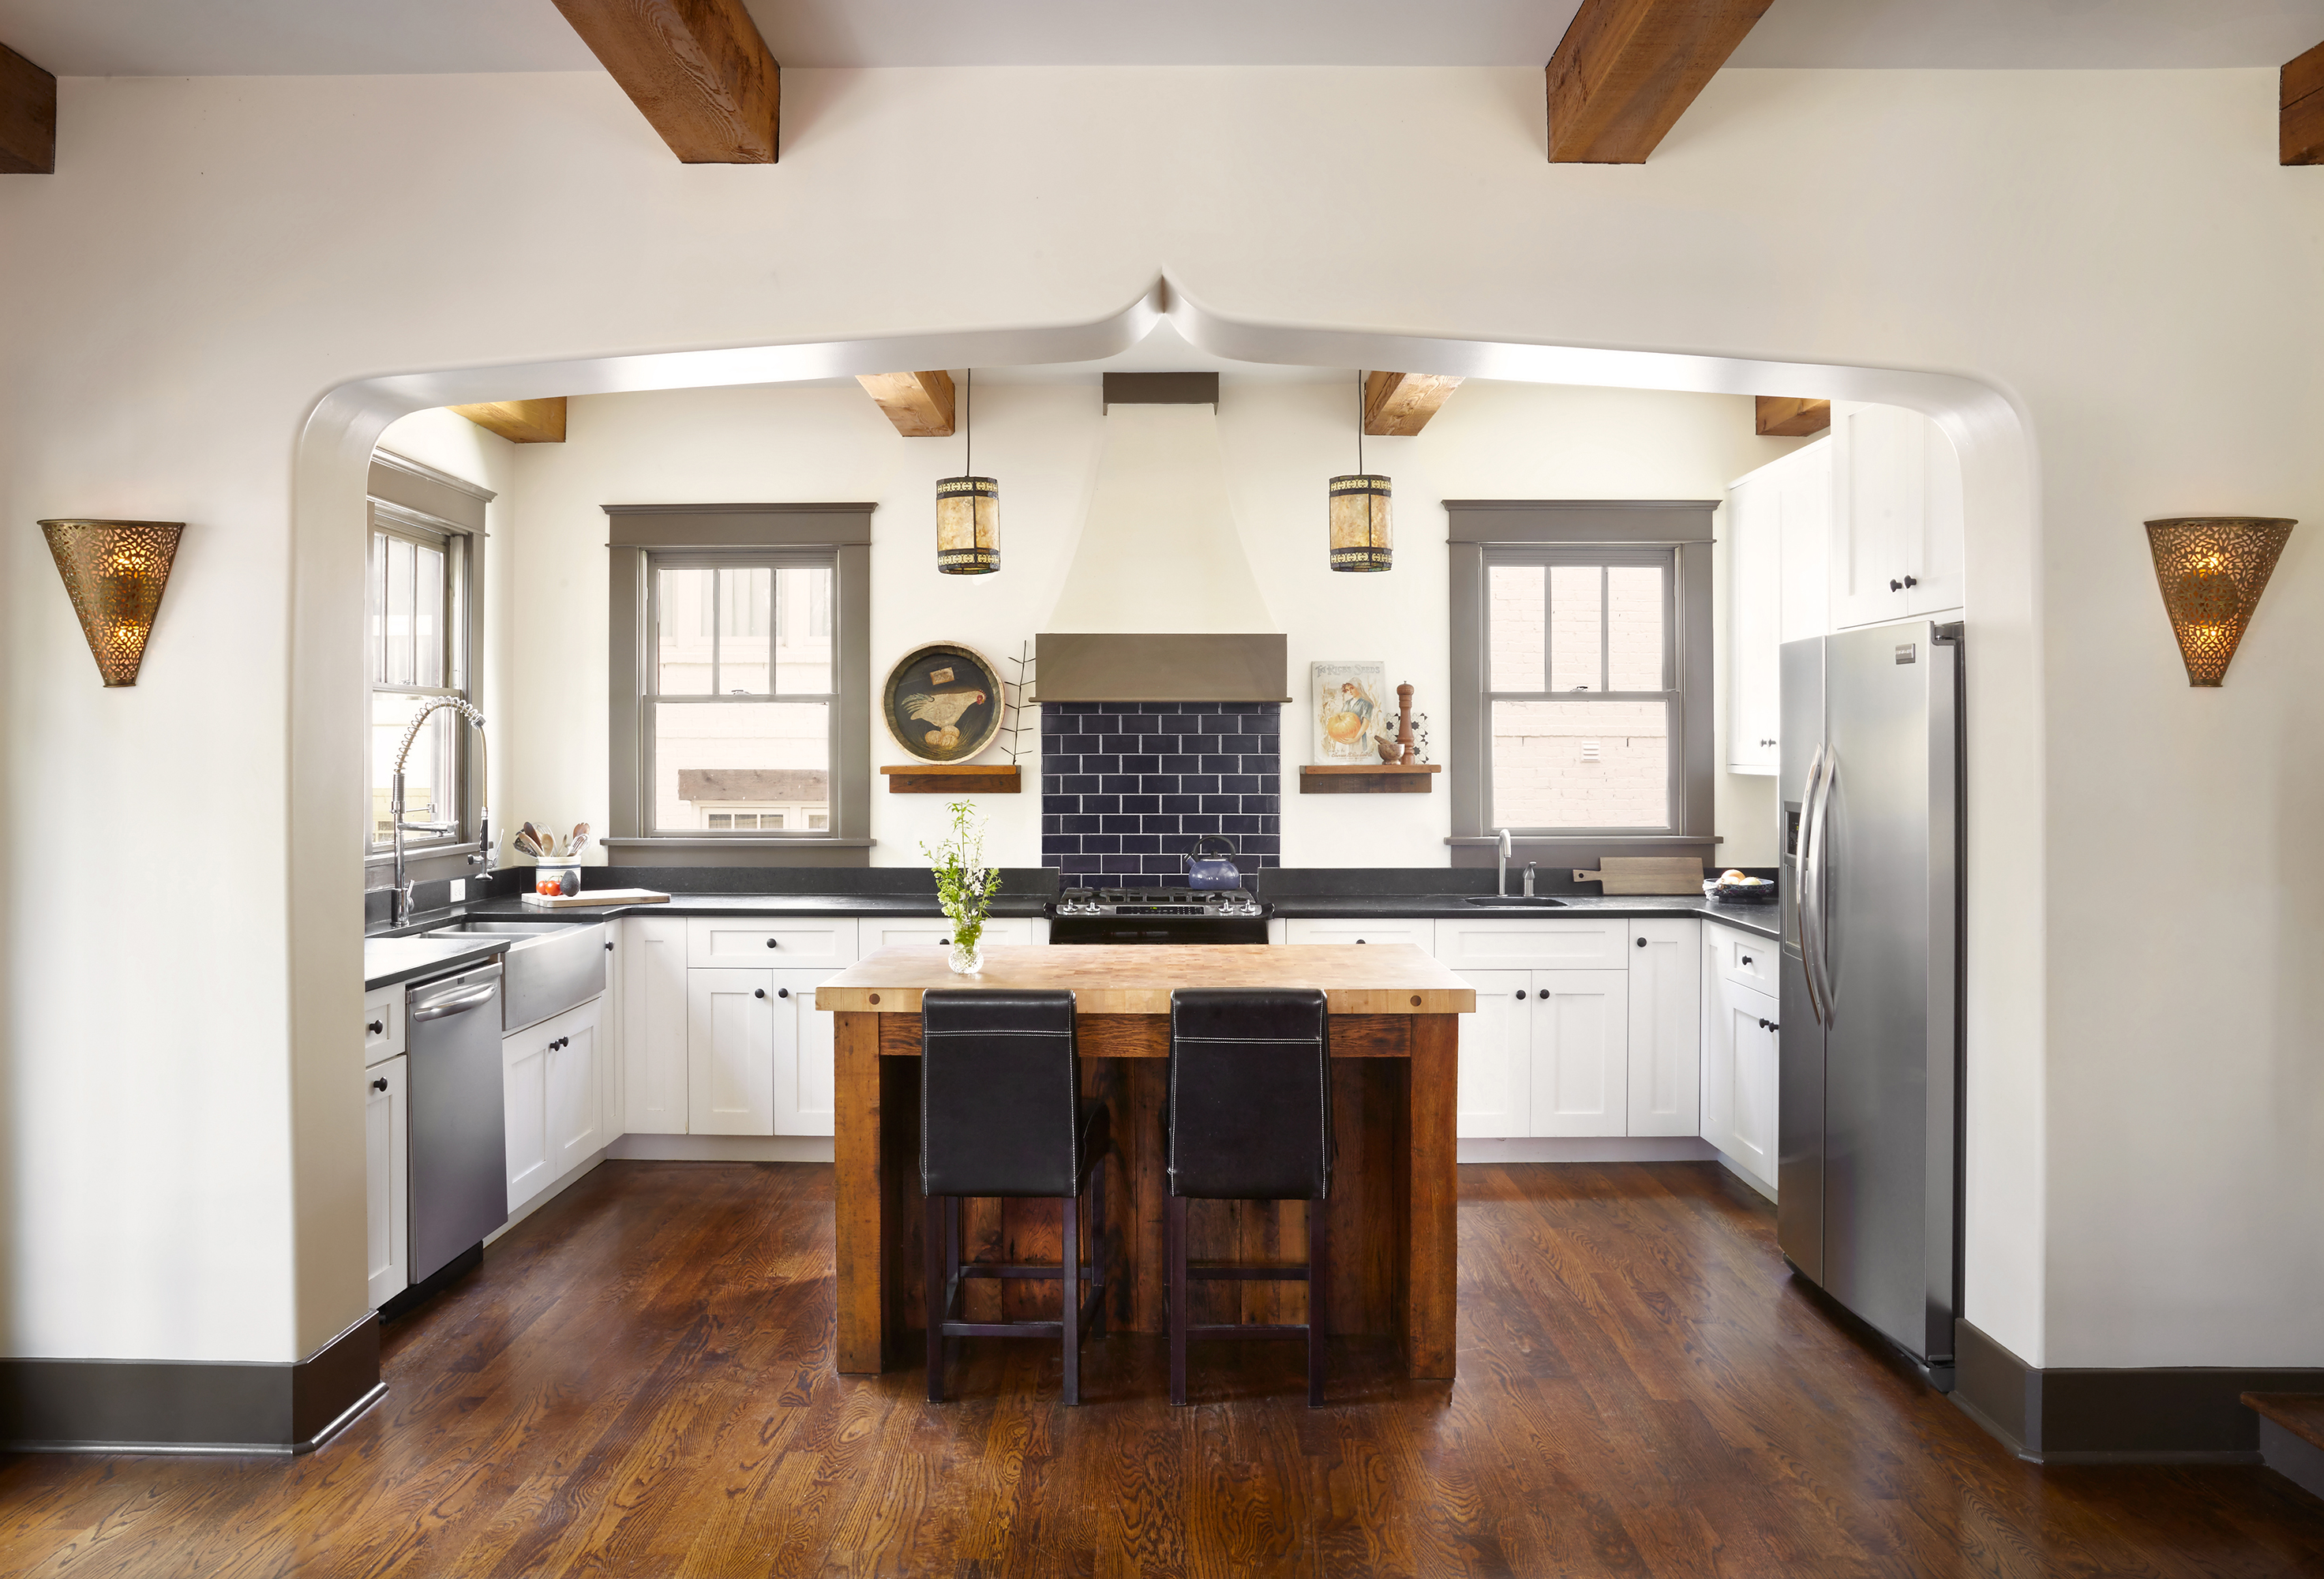 Kitchen Alcove With Revamp An Old Tudor Learns New Tricks In Nashville Curbed